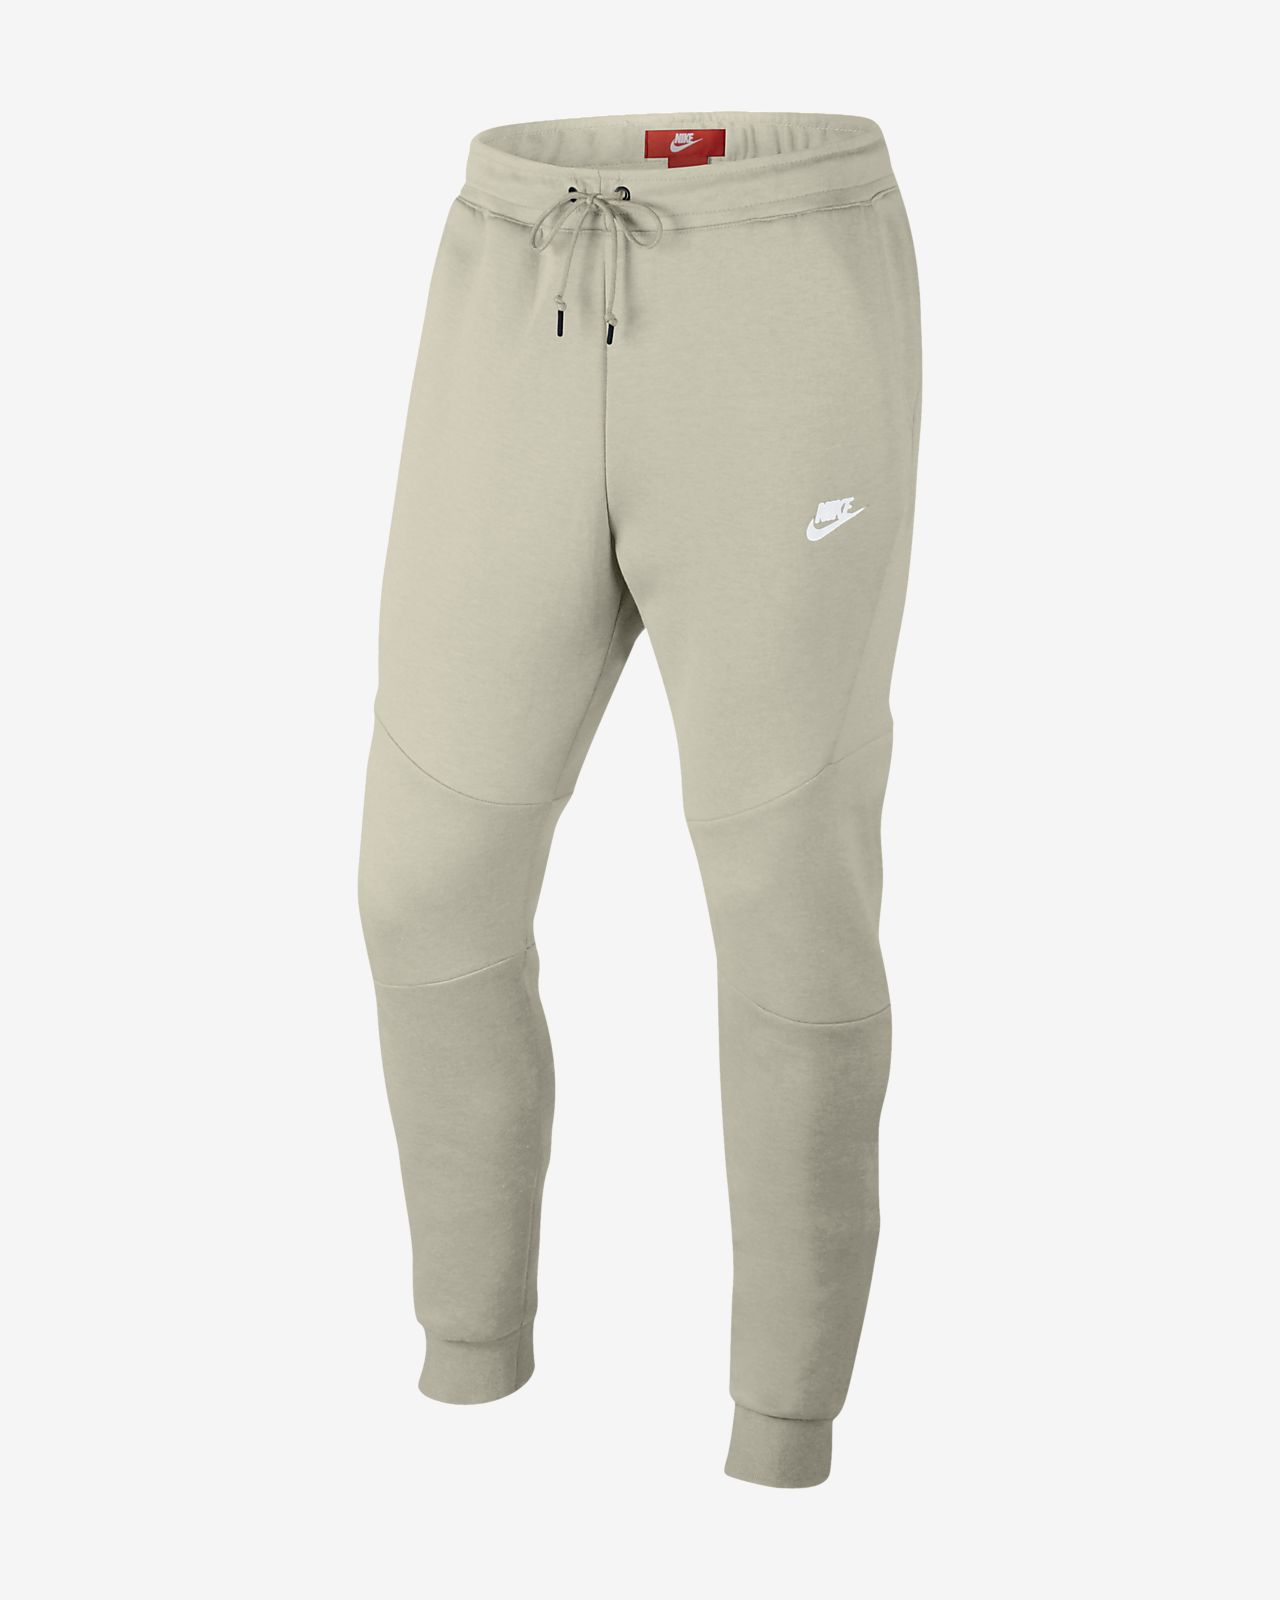 8a64dcdbc44f Nike Sportswear Tech Fleece Men s Joggers. Nike.com GB